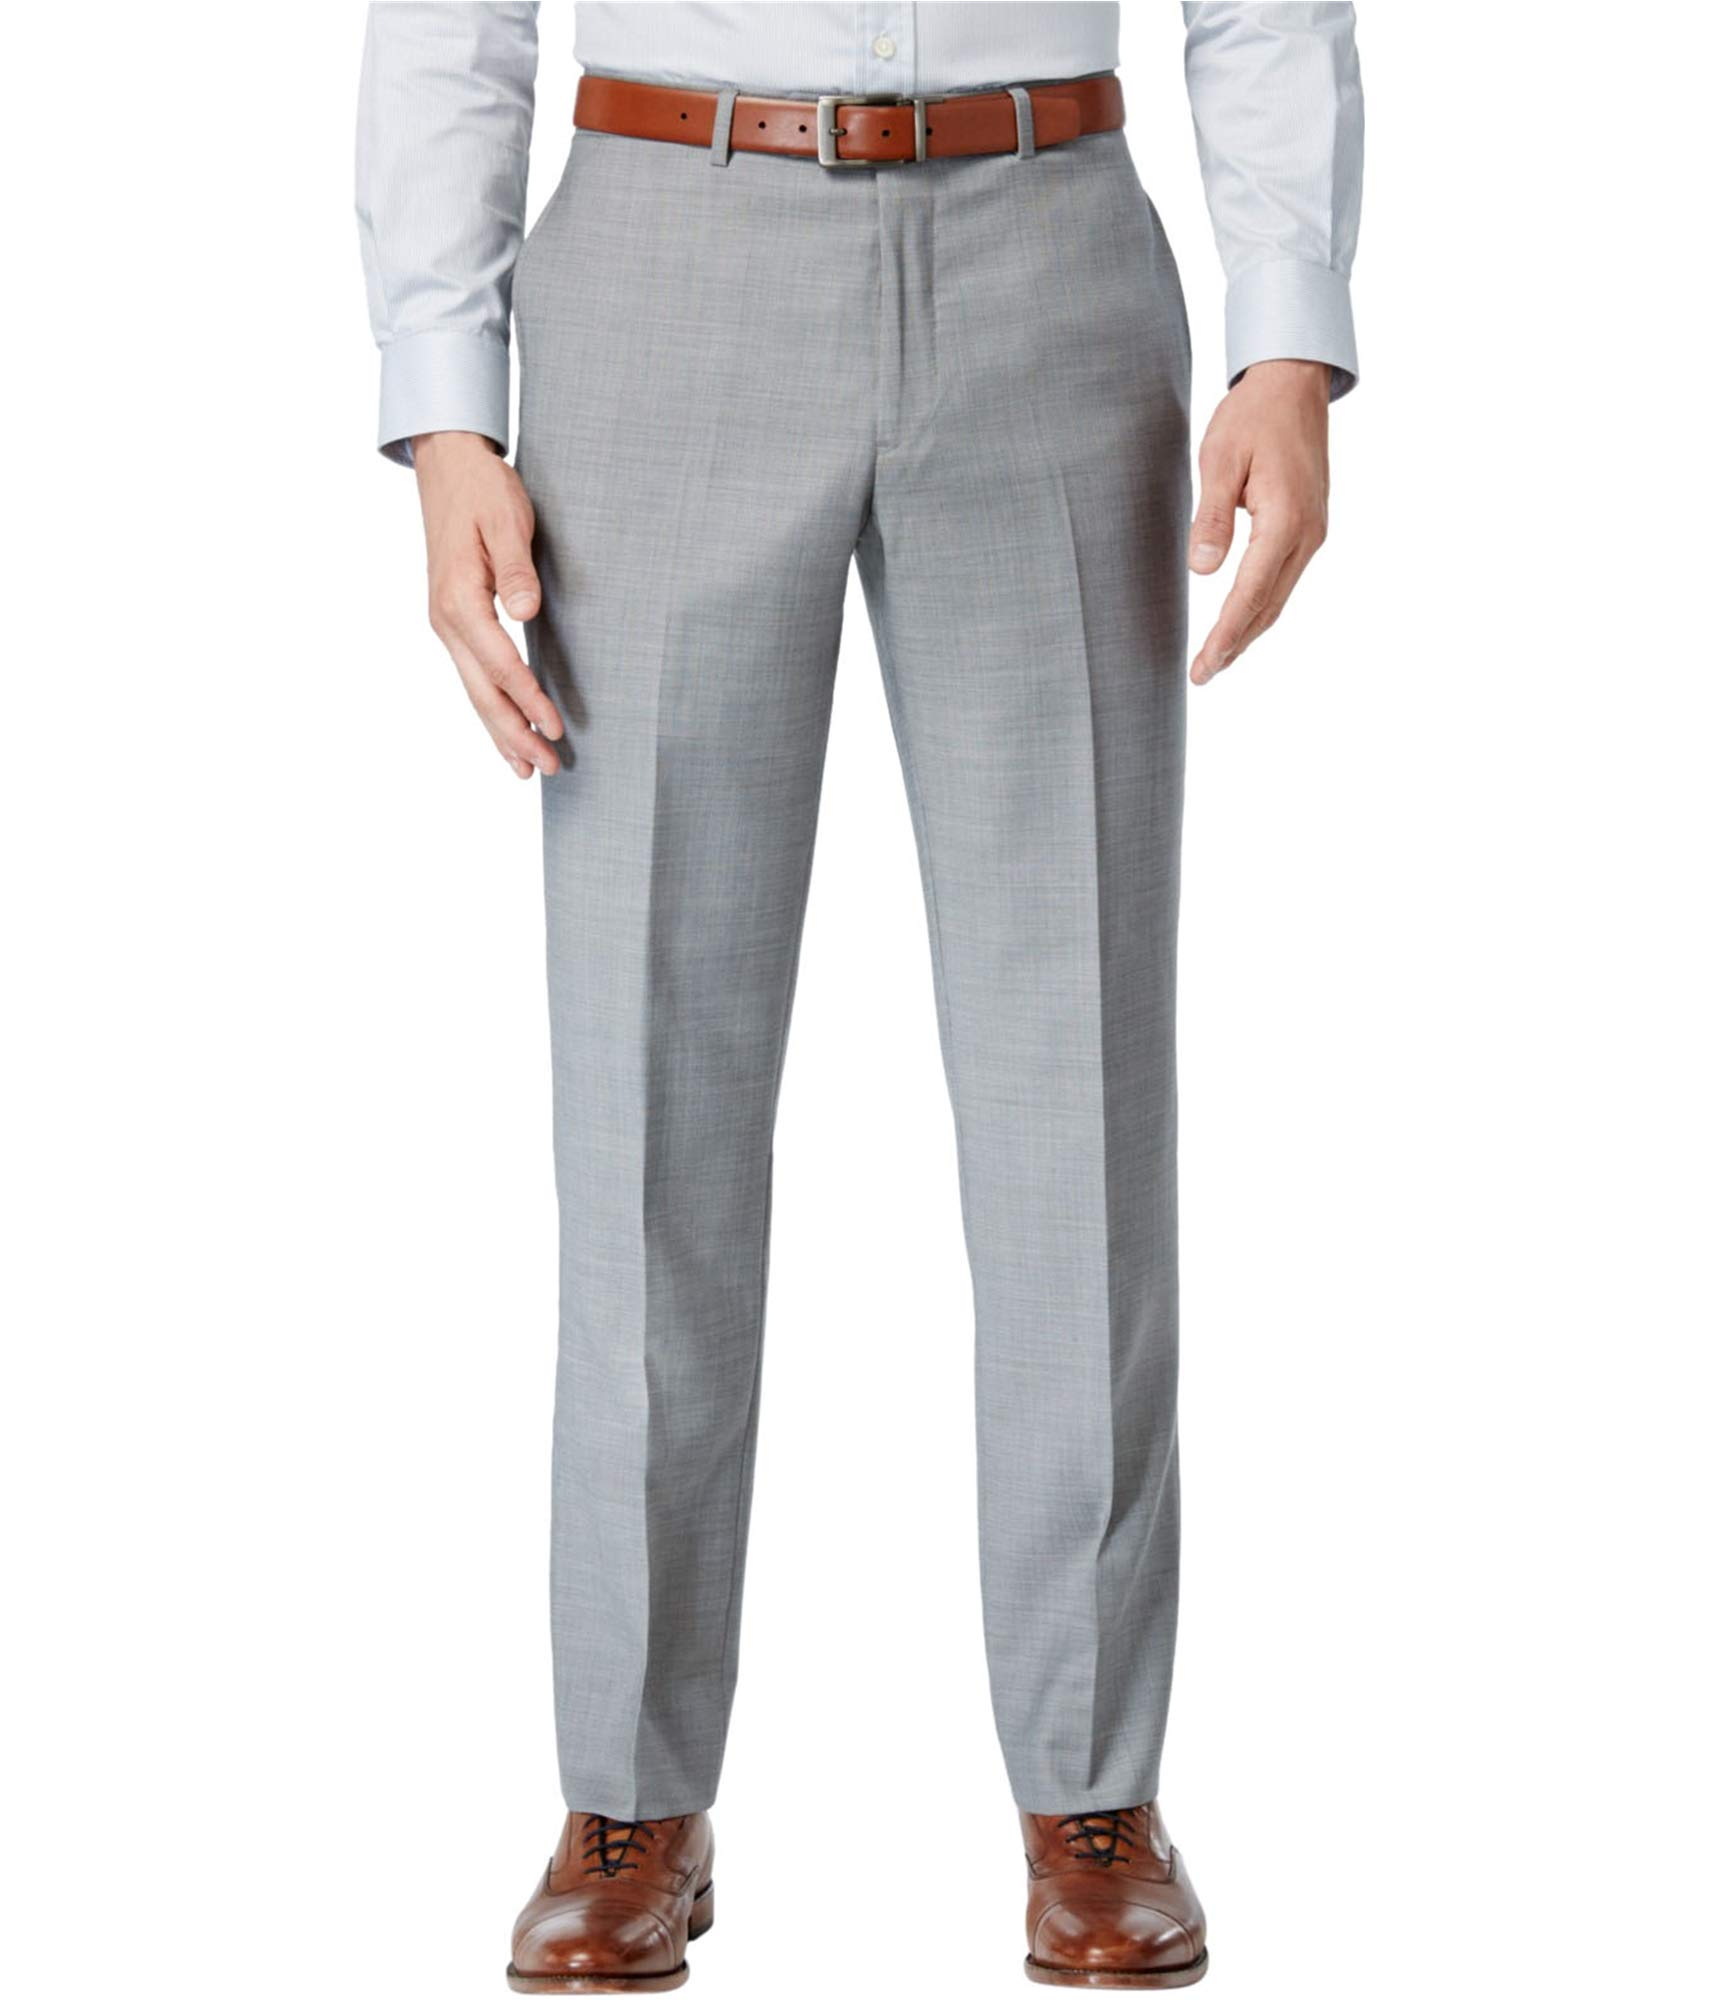 Tommy Hilfiger Mens Flat Front Trim Fit 100% Wool Suit Separate Pant, Grey Solid, 34W x 34L by Tommy Hilfiger